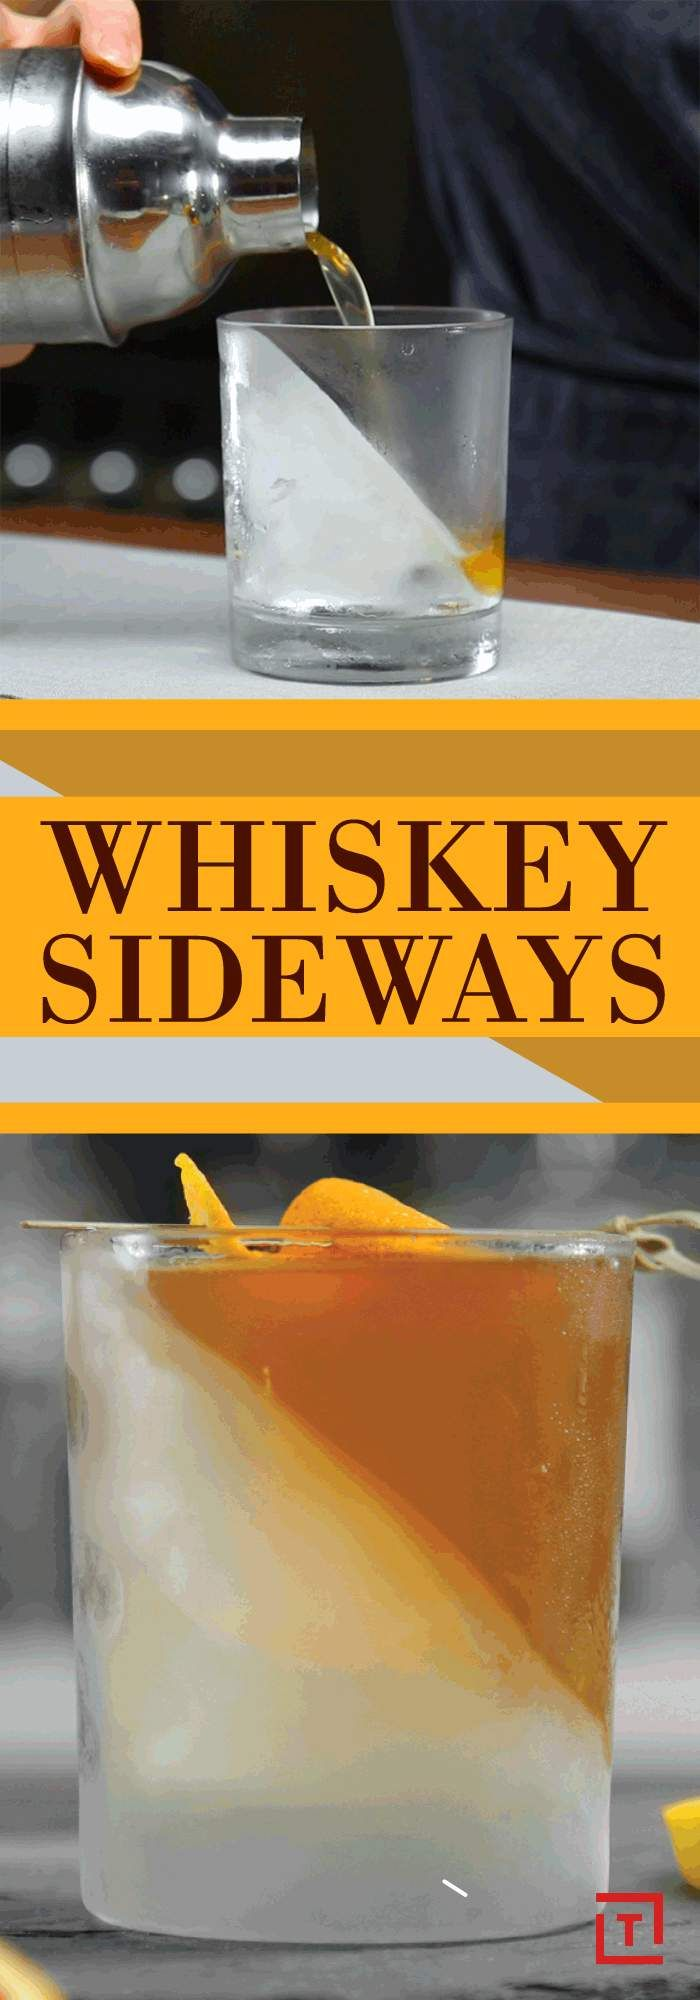 Switch Up Your (Ice) Position with This Whiskey Sideways